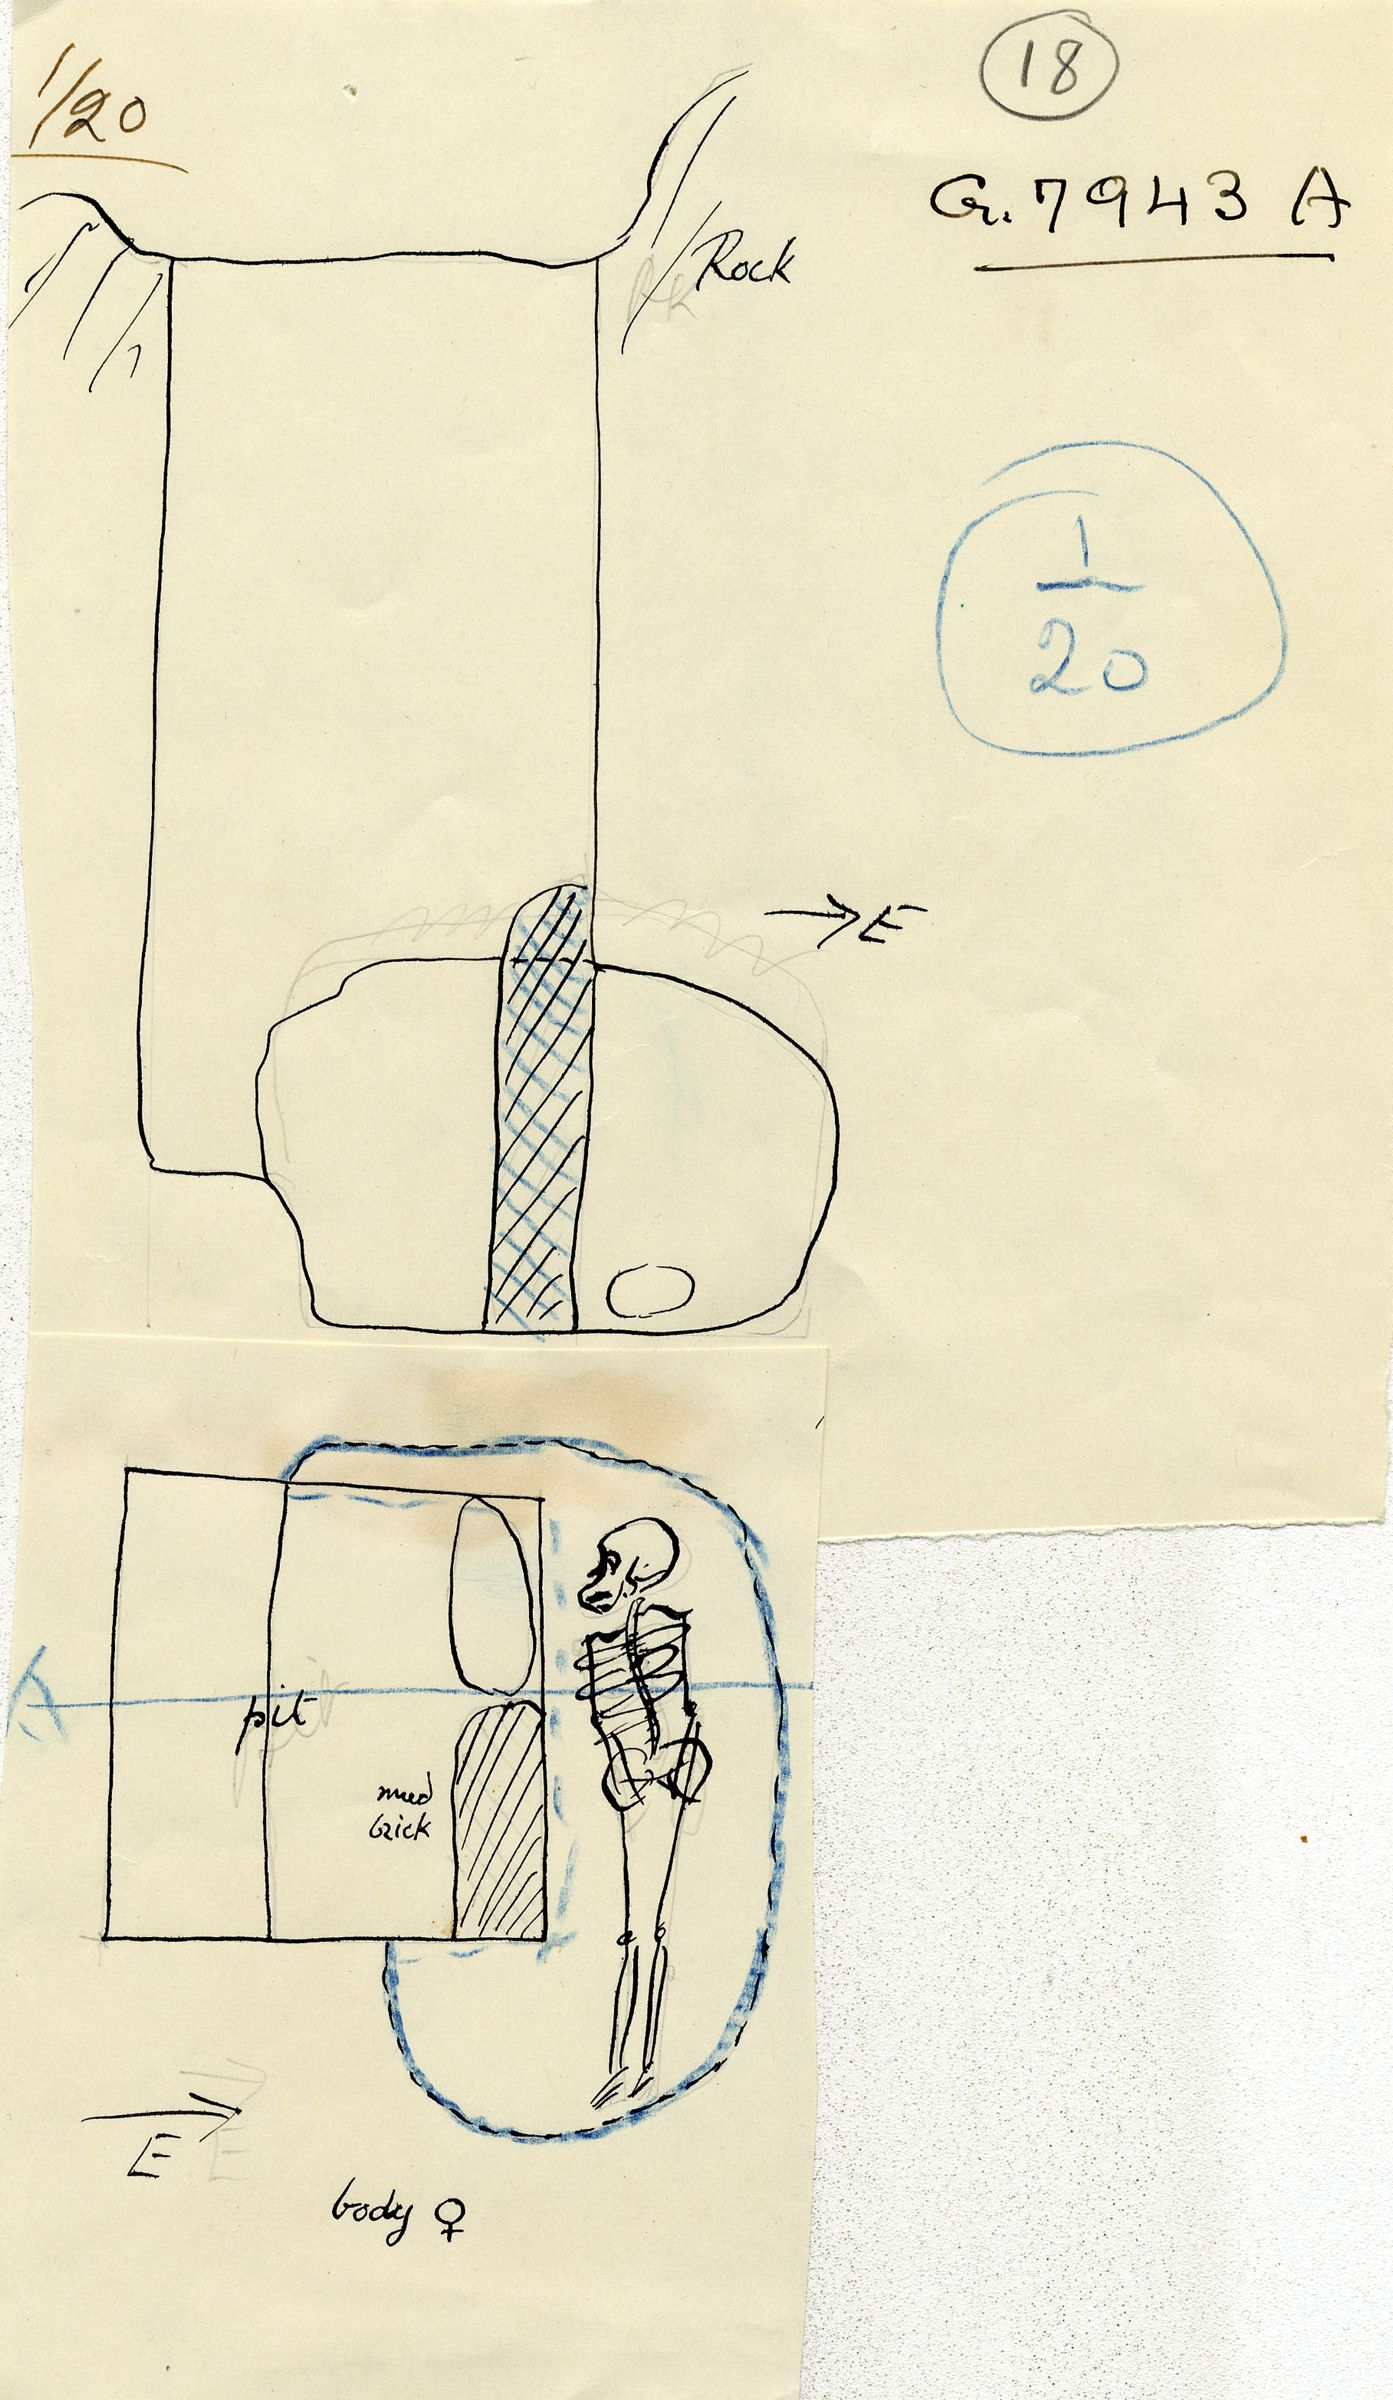 Maps and plans: G 7943, Shaft A